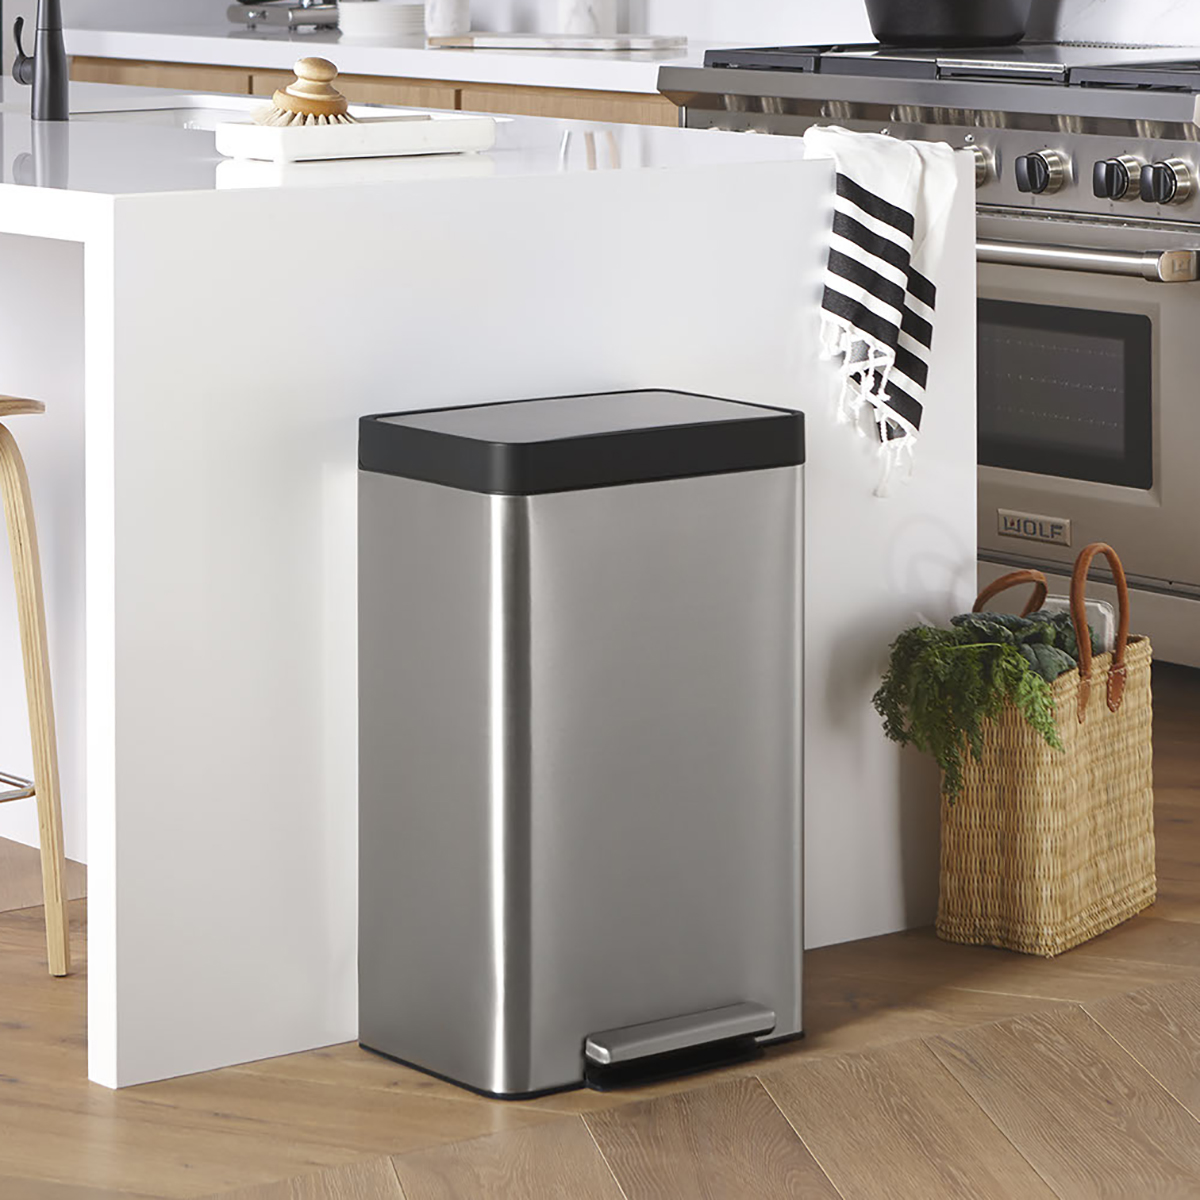 Picture of: Kohler Stainless Steel 13 Gal Step Trash Can The Container Store